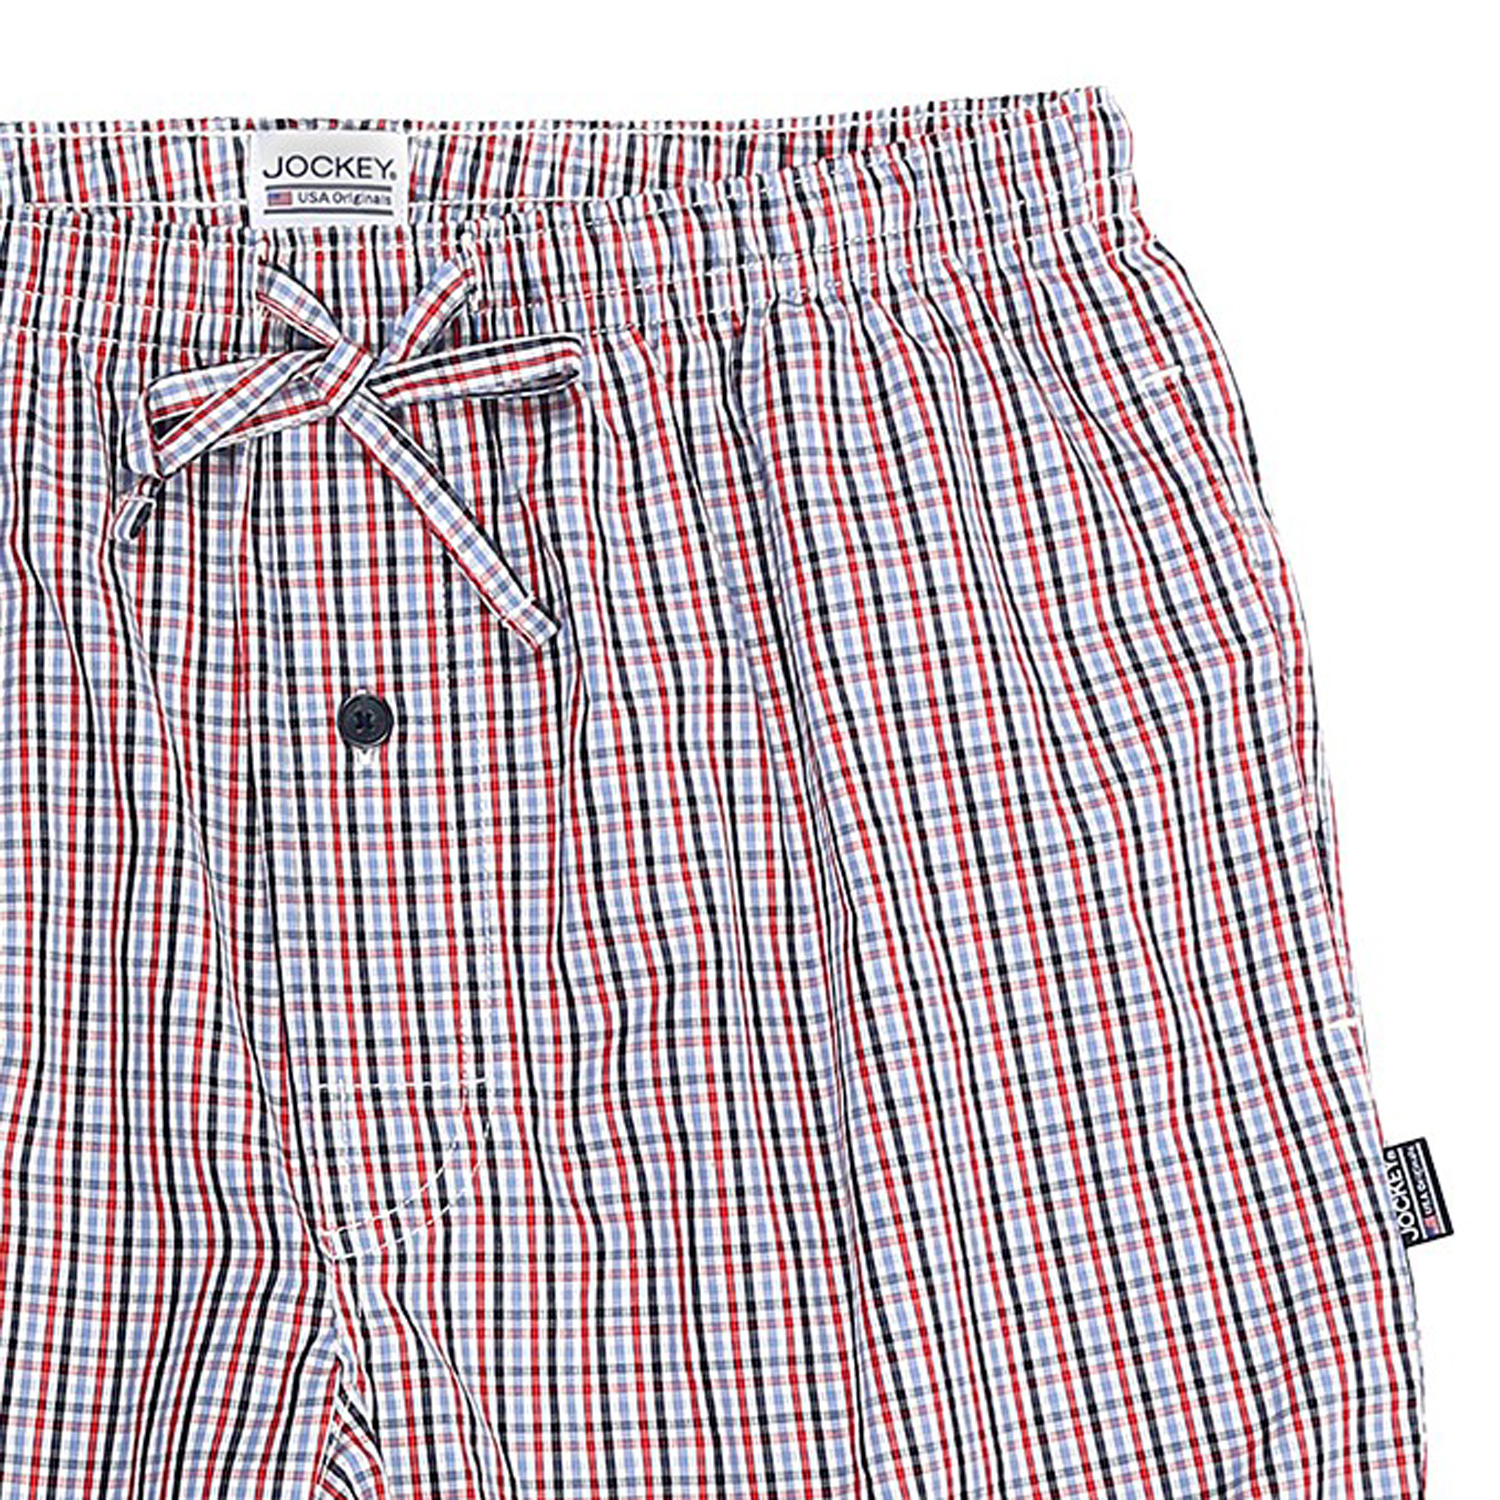 Detail Image to Pyjama bermudas for men from JOCKEY red checked in large sizes up to 6XL